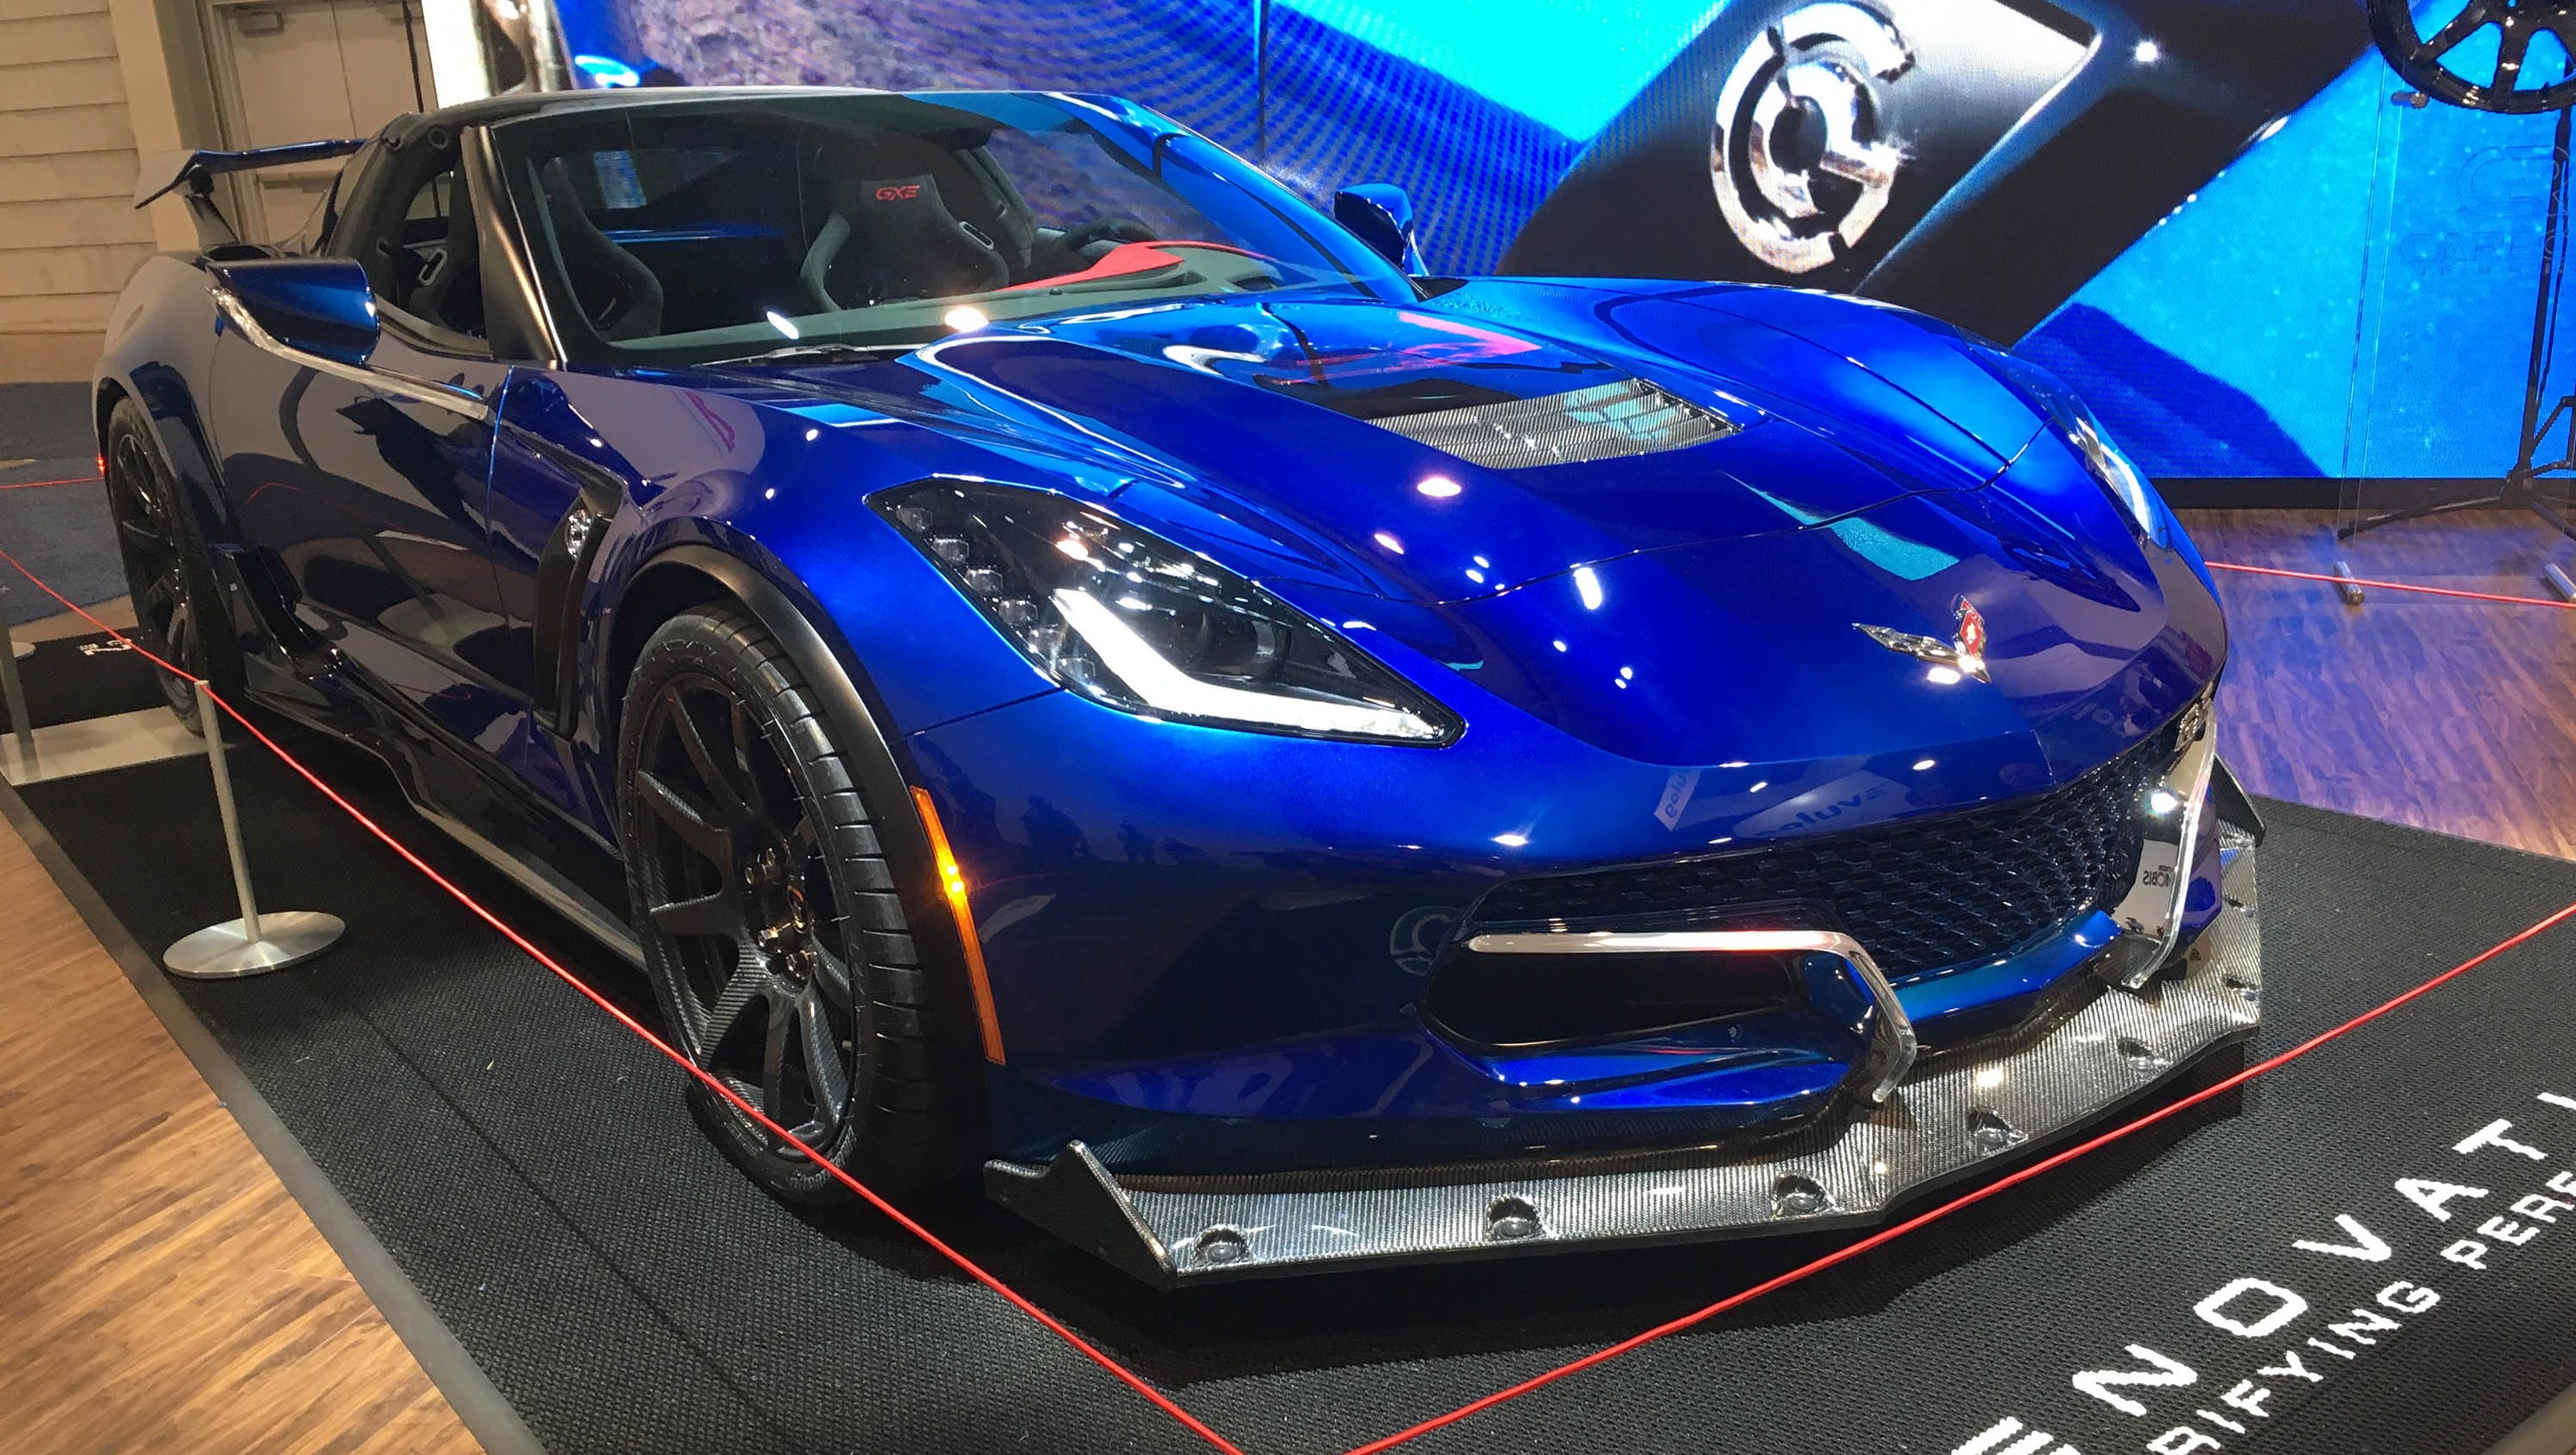 This $750K converted all-electric Corvette could hit 220 m.p.h.